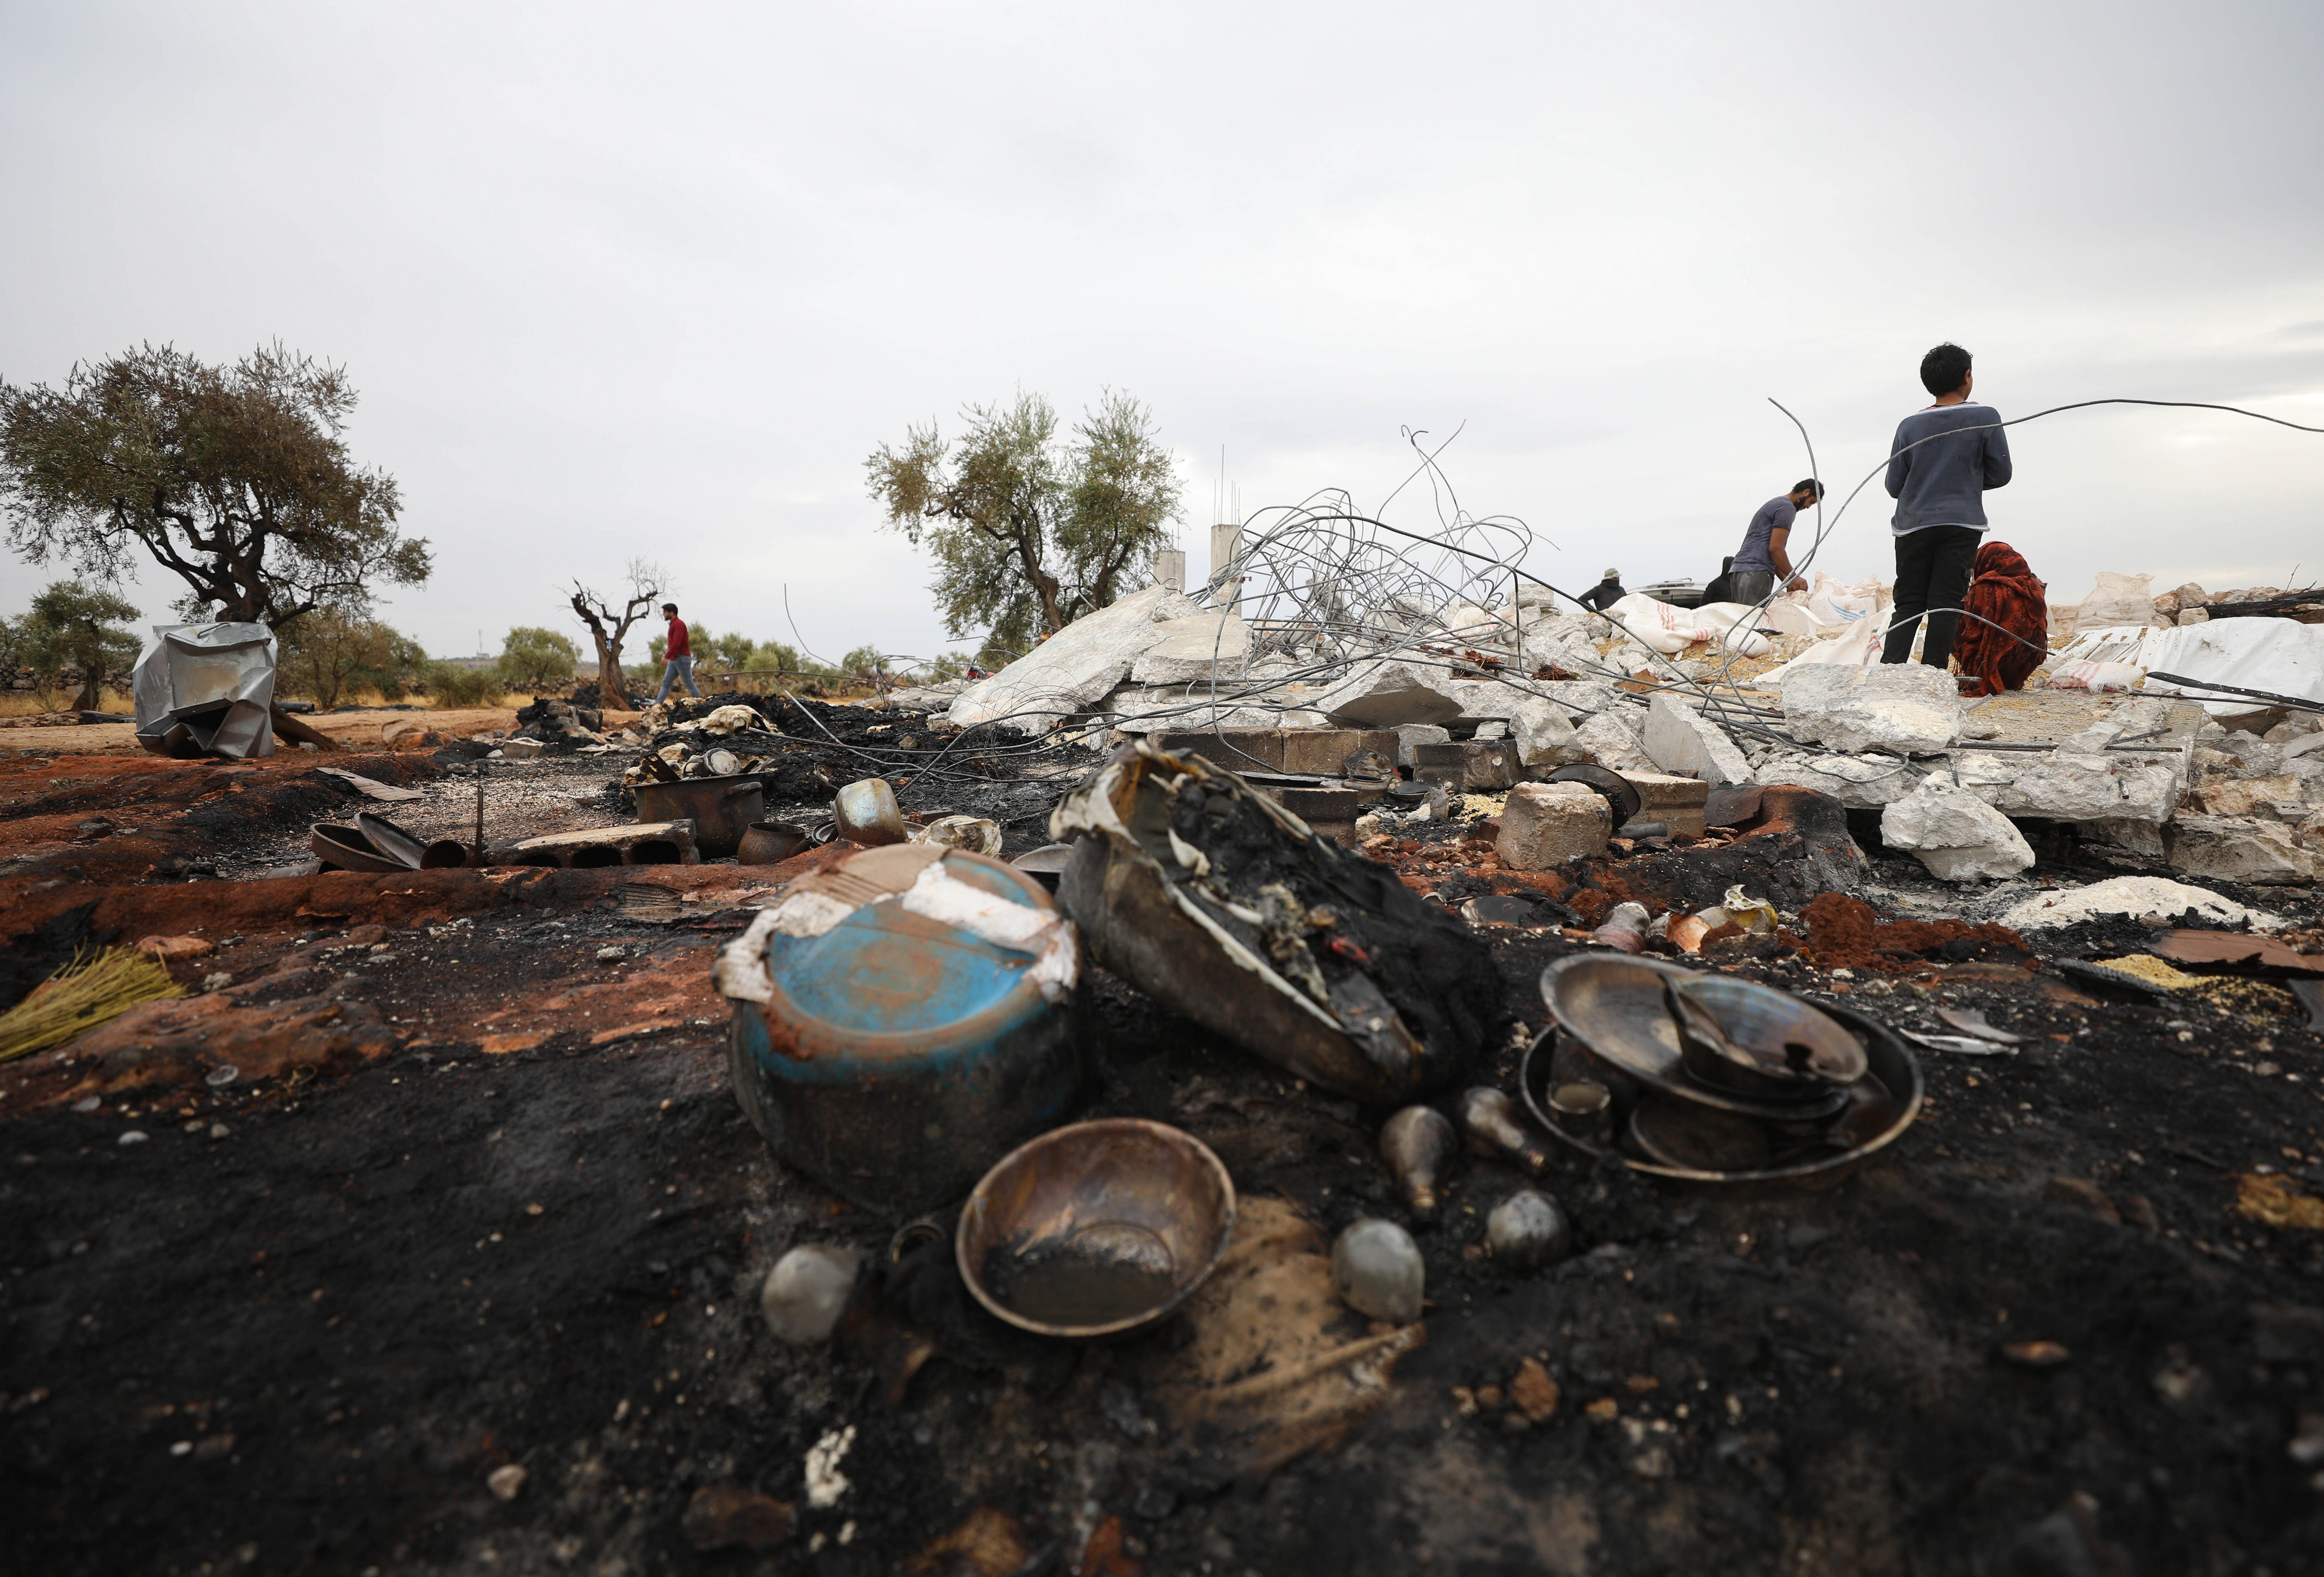 A picture taken on October 28, 2019 shows Syrians sifting through the rubble at the site of a suspected US-led operation against Islamic State (IS) chief Abu Bakr al-Baghdadi the previous day, on the edge of the small Syrian village of Barisha in the country's opposition-held northwestern Idlib province. - US President Donald Trump announced that Baghdadi, the elusive leader of the jihadist group and the world's most wanted man, was killed in the early hours of Octobe 27 in an overnight US raid near the village, located less than five kilometres from Turkey and controlled by the dominant jihadist group Hayat Tahrir al-Sham, an organisation that includes former operatives from Al-Qaeda's Syria affiliate. (Photo by Omar HAJ KADOUR / AFP) (Photo by OMAR HAJ KADOUR/AFP via Getty Images)